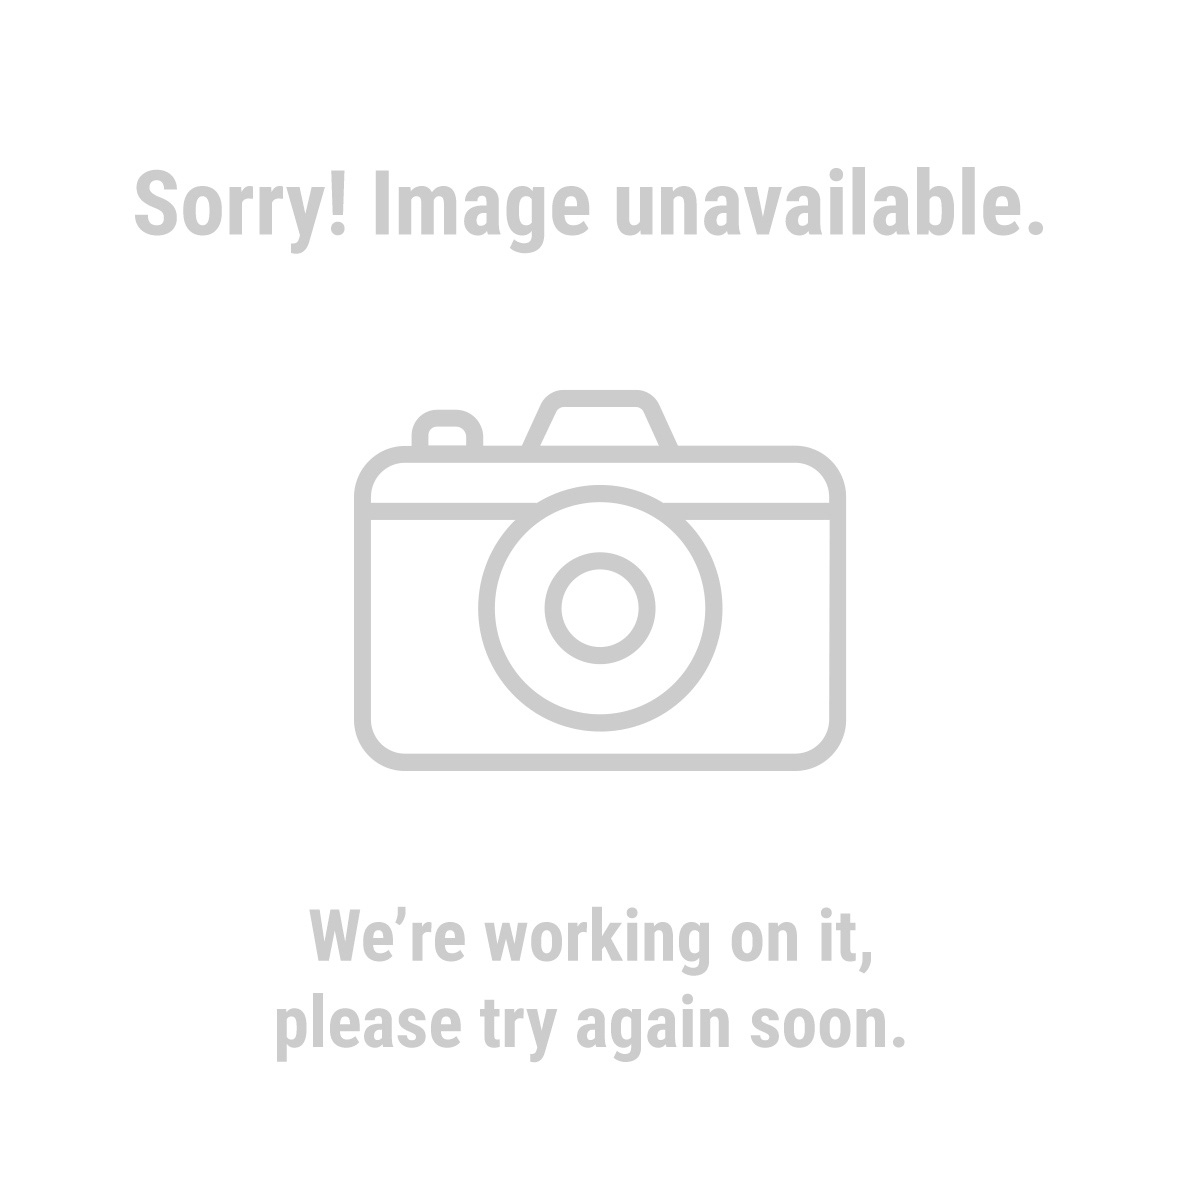 U.S. General® Pro 67681 56 in., 11 Drawer Glossy Red Industrial Roller Cabinet